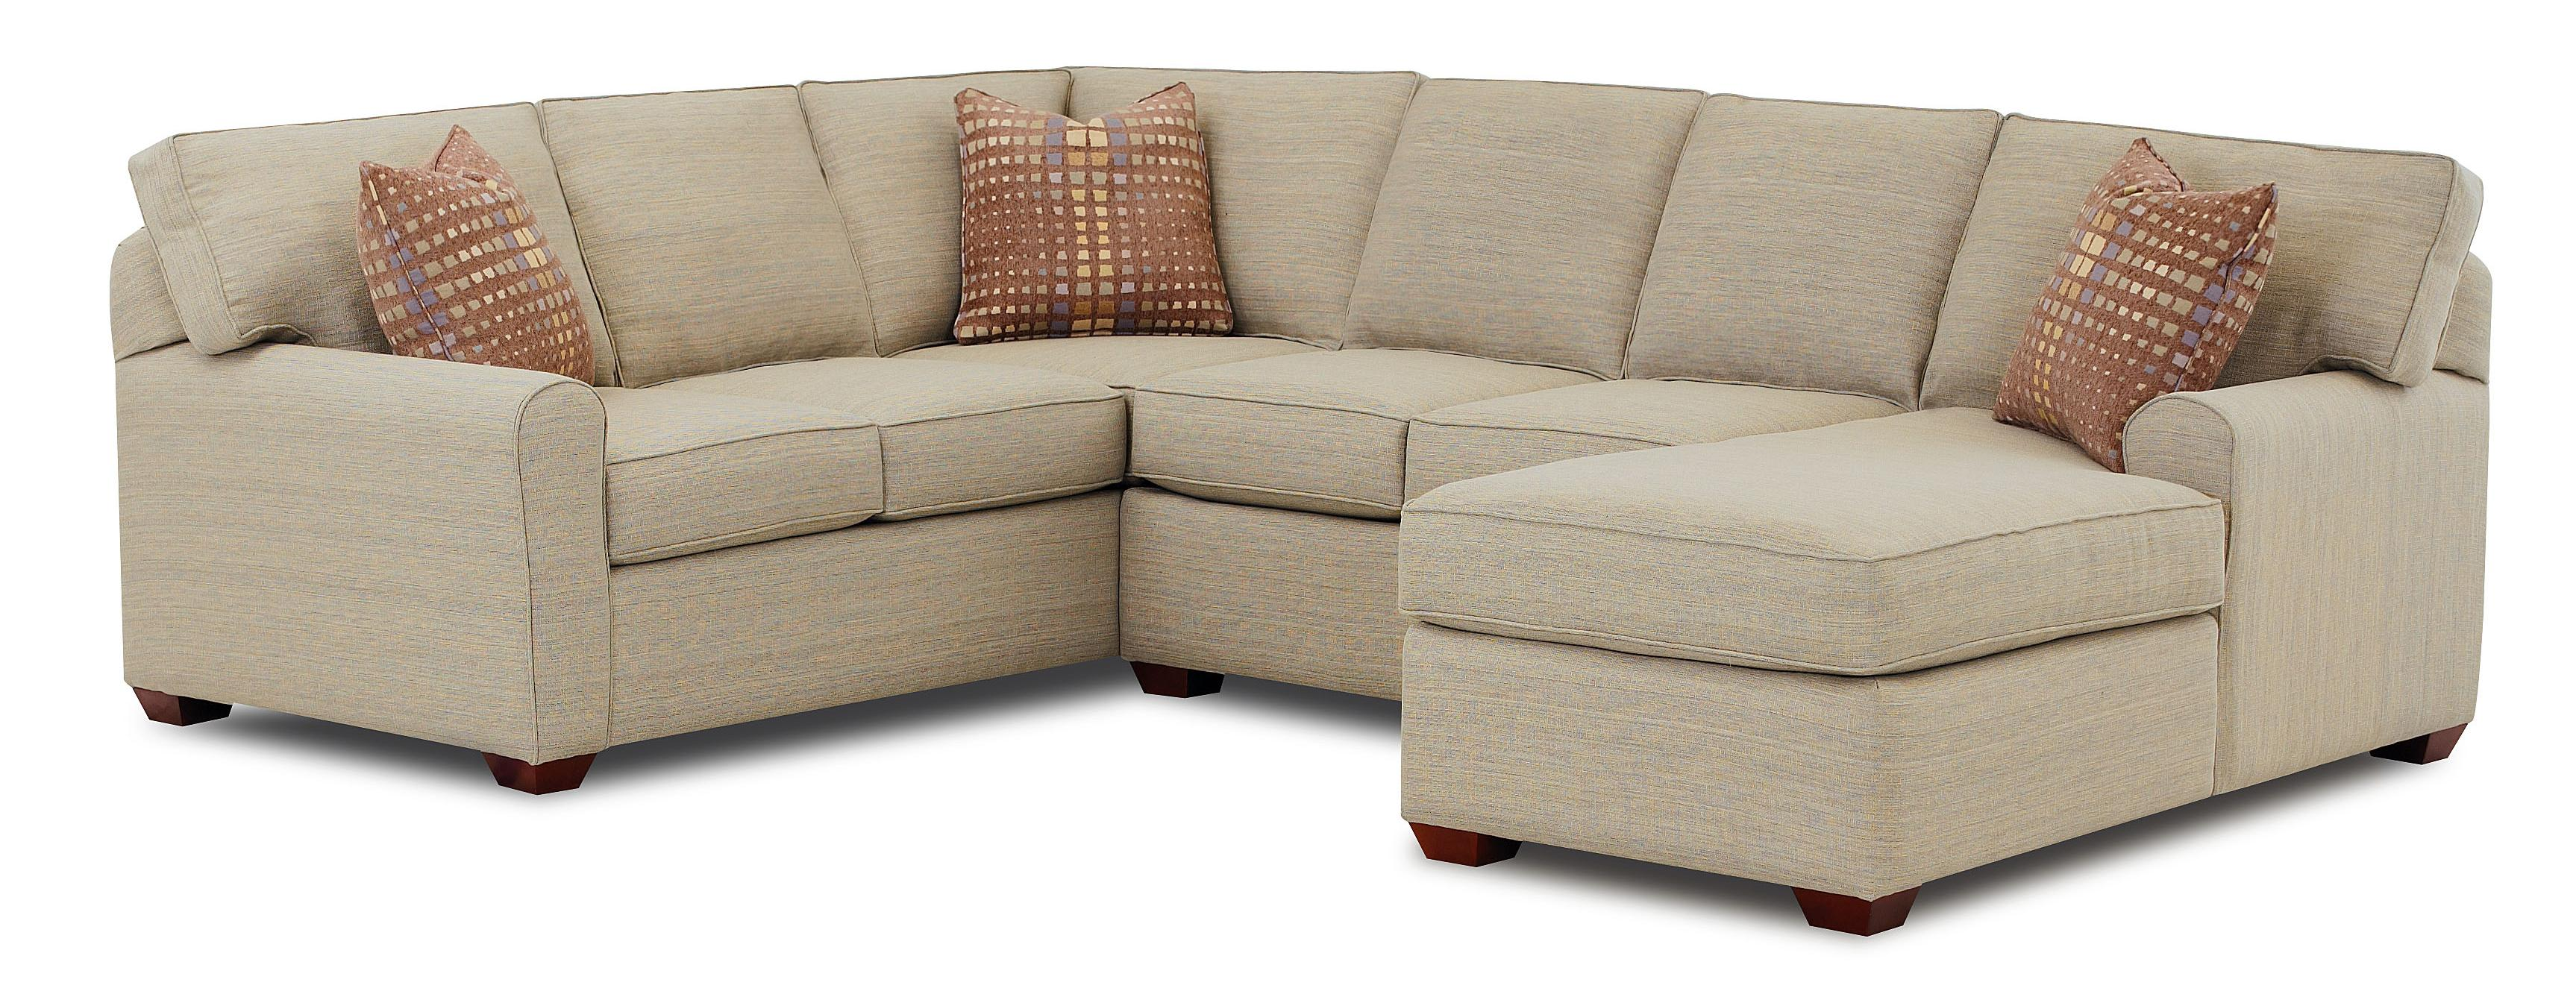 less facing sectional furniture right for chaise bingo media model image product ab mor mocha